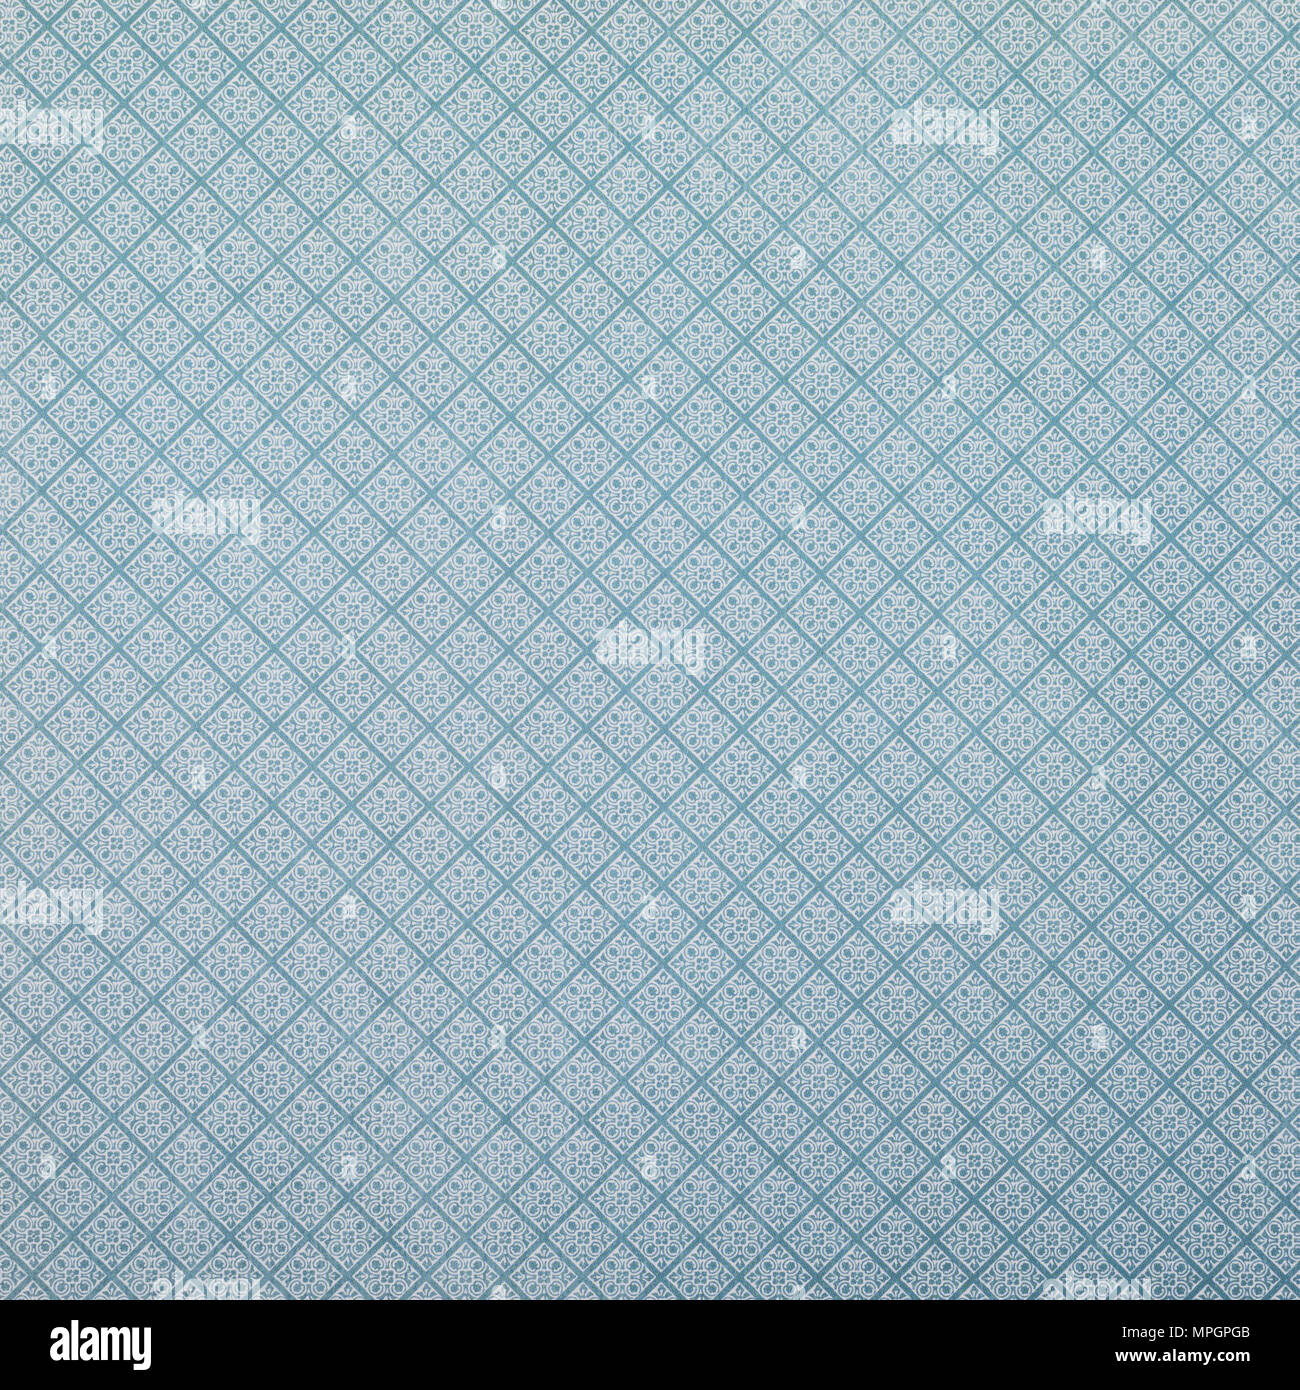 blue wrapper design with white lozenges pattern - Stock Image